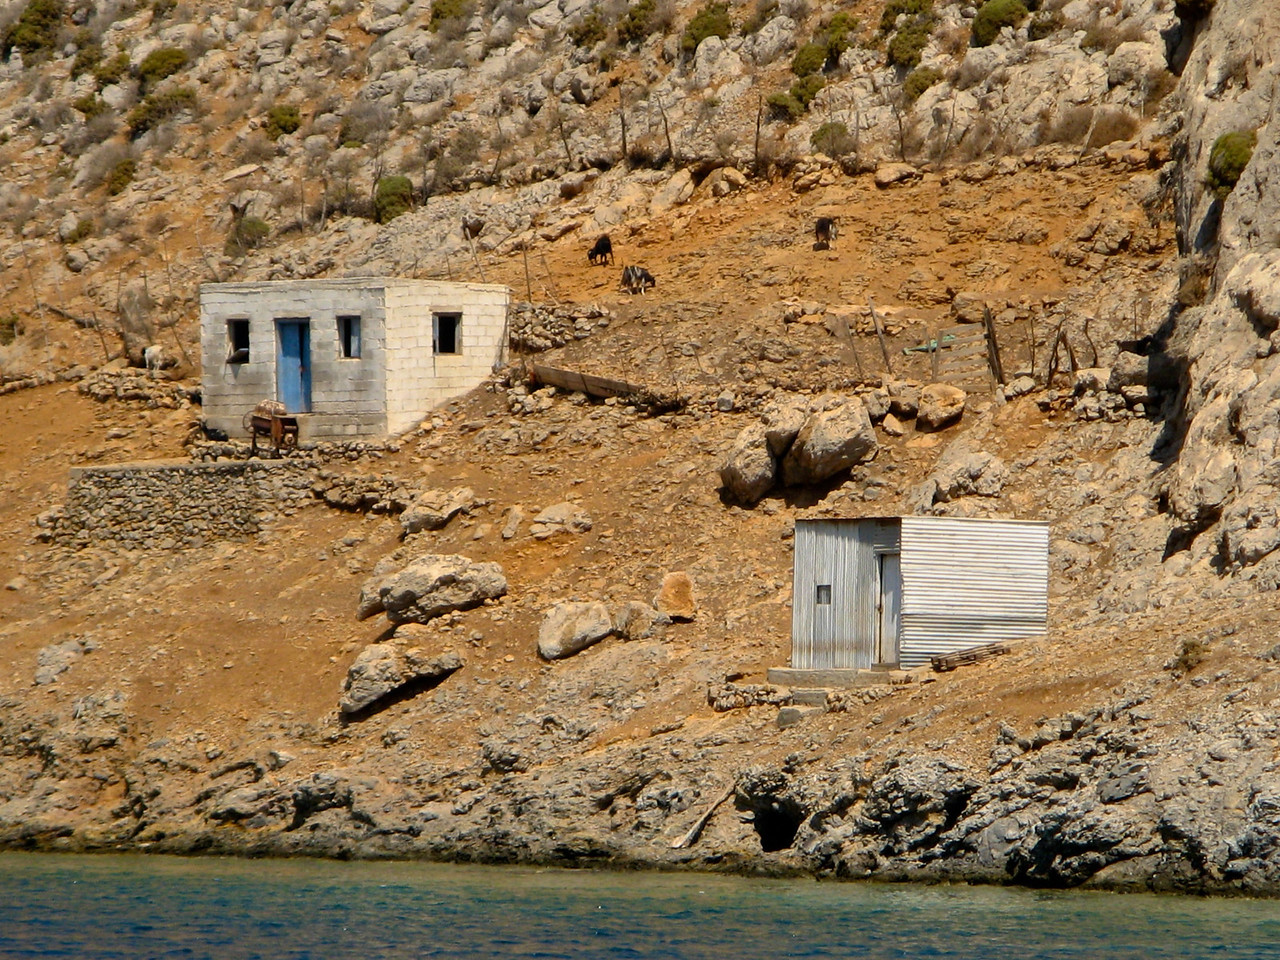 As we pull into the cove, you can see some old houses along the sides.  There are less than 20 people who live here in the cove.